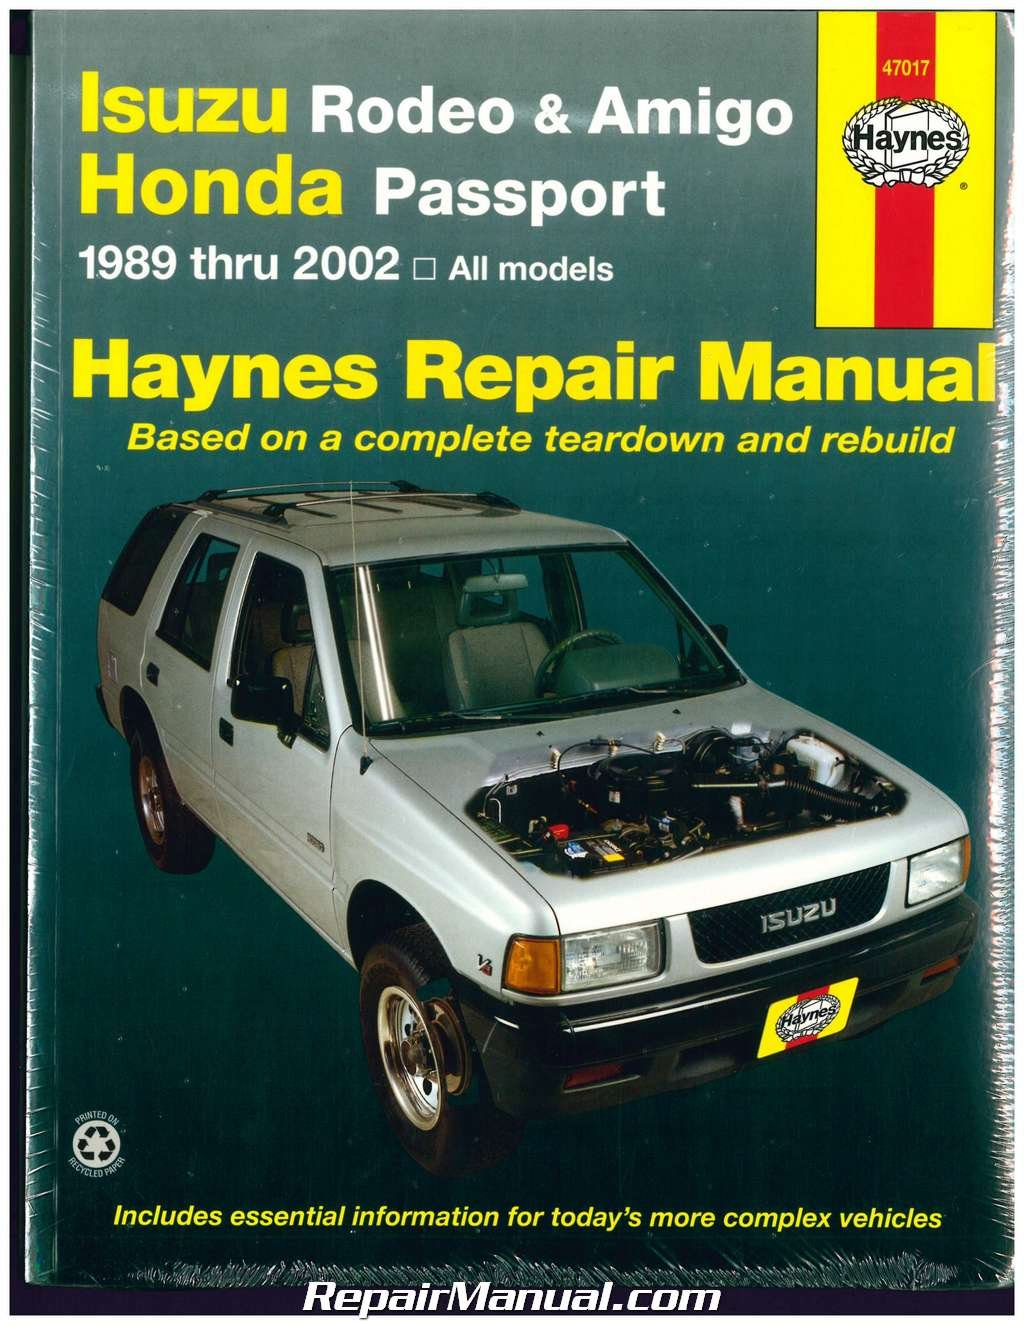 H47017 Haynes Isuzu Rodeo Amigo Honda Passport 1989-2002 Auto Repair Manual:  Manufacturer: Amazon.com: Books